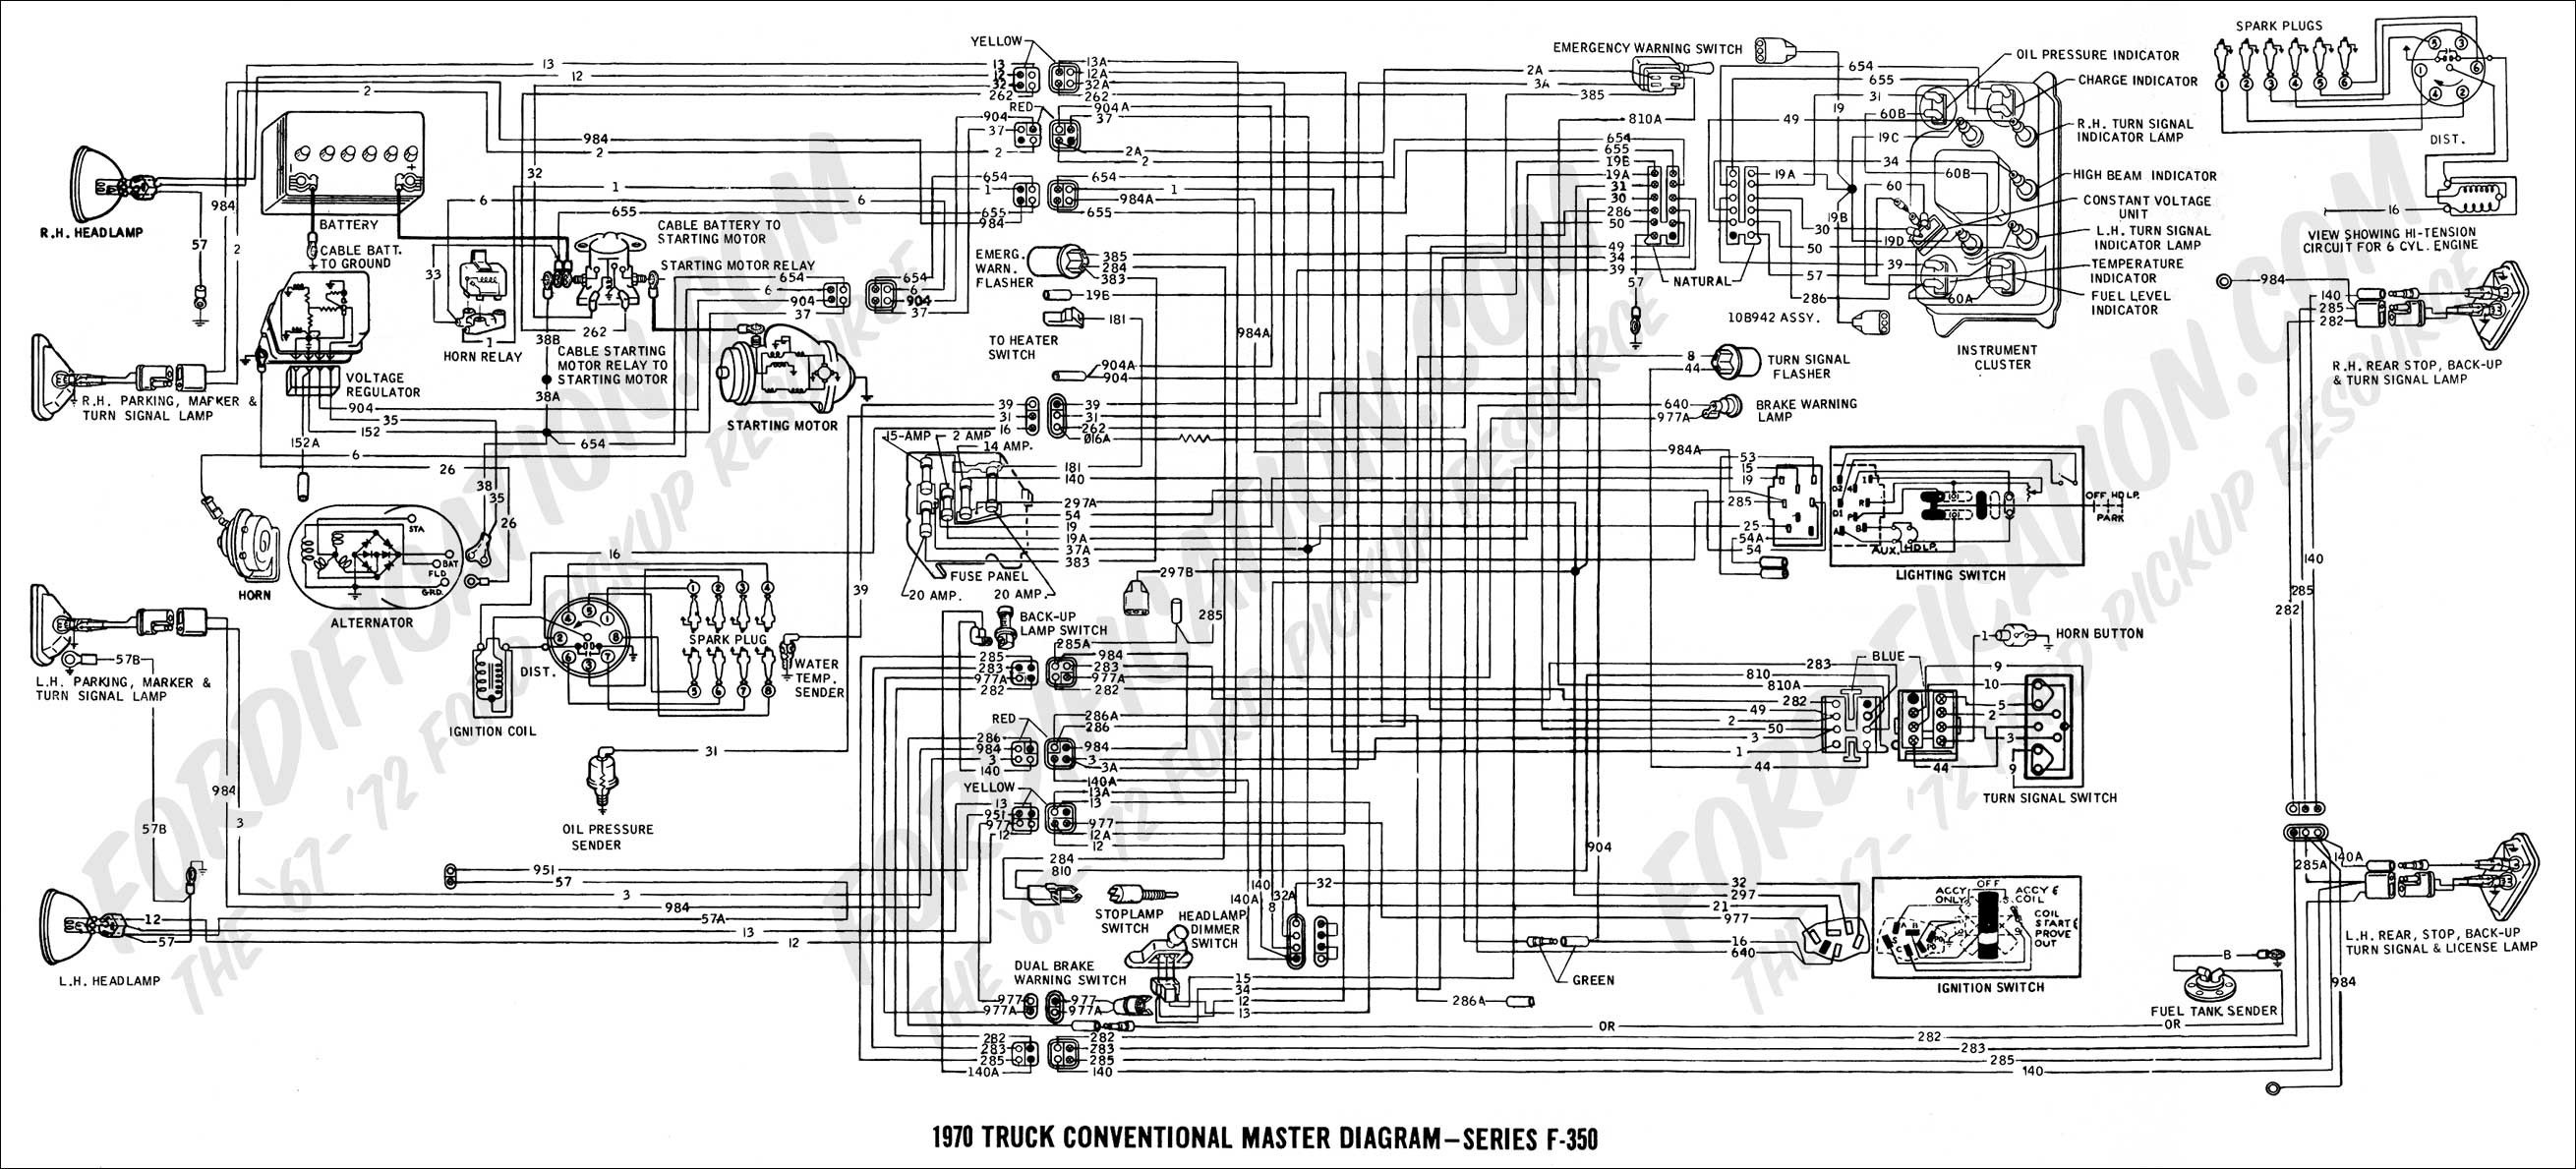 Ford F250 Tail Light Wiring Colors 2003 ford F350 Super Duty Wiring Diagram Of Ford F250 Tail Light Wiring Colors